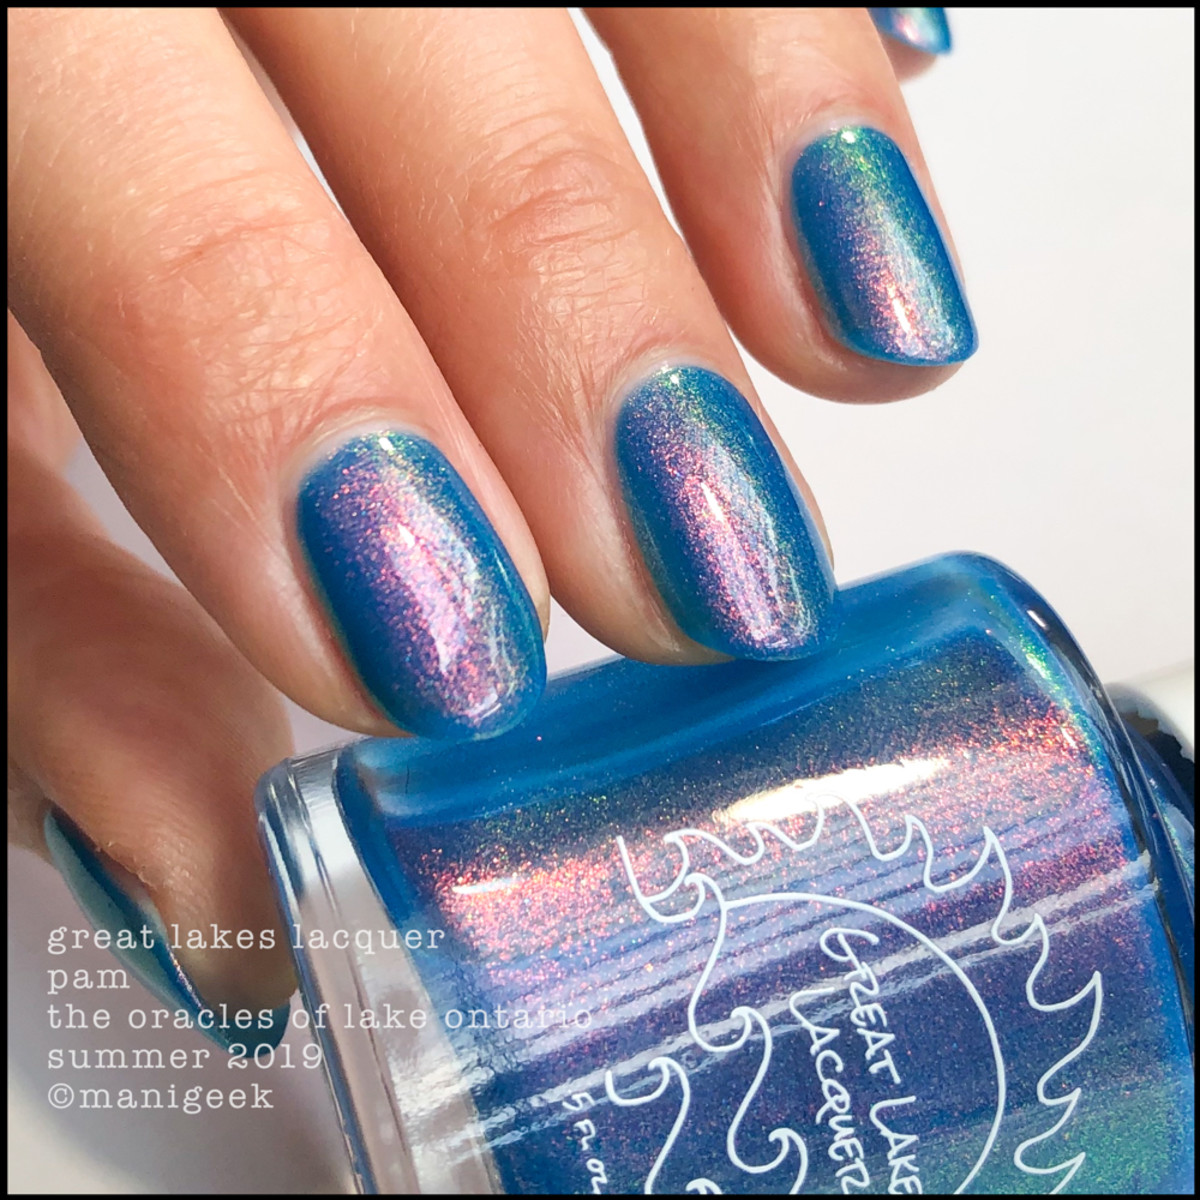 Great Lakes Lacquer Oracles of Lake Ontario Pam - LE IEC 2019 2